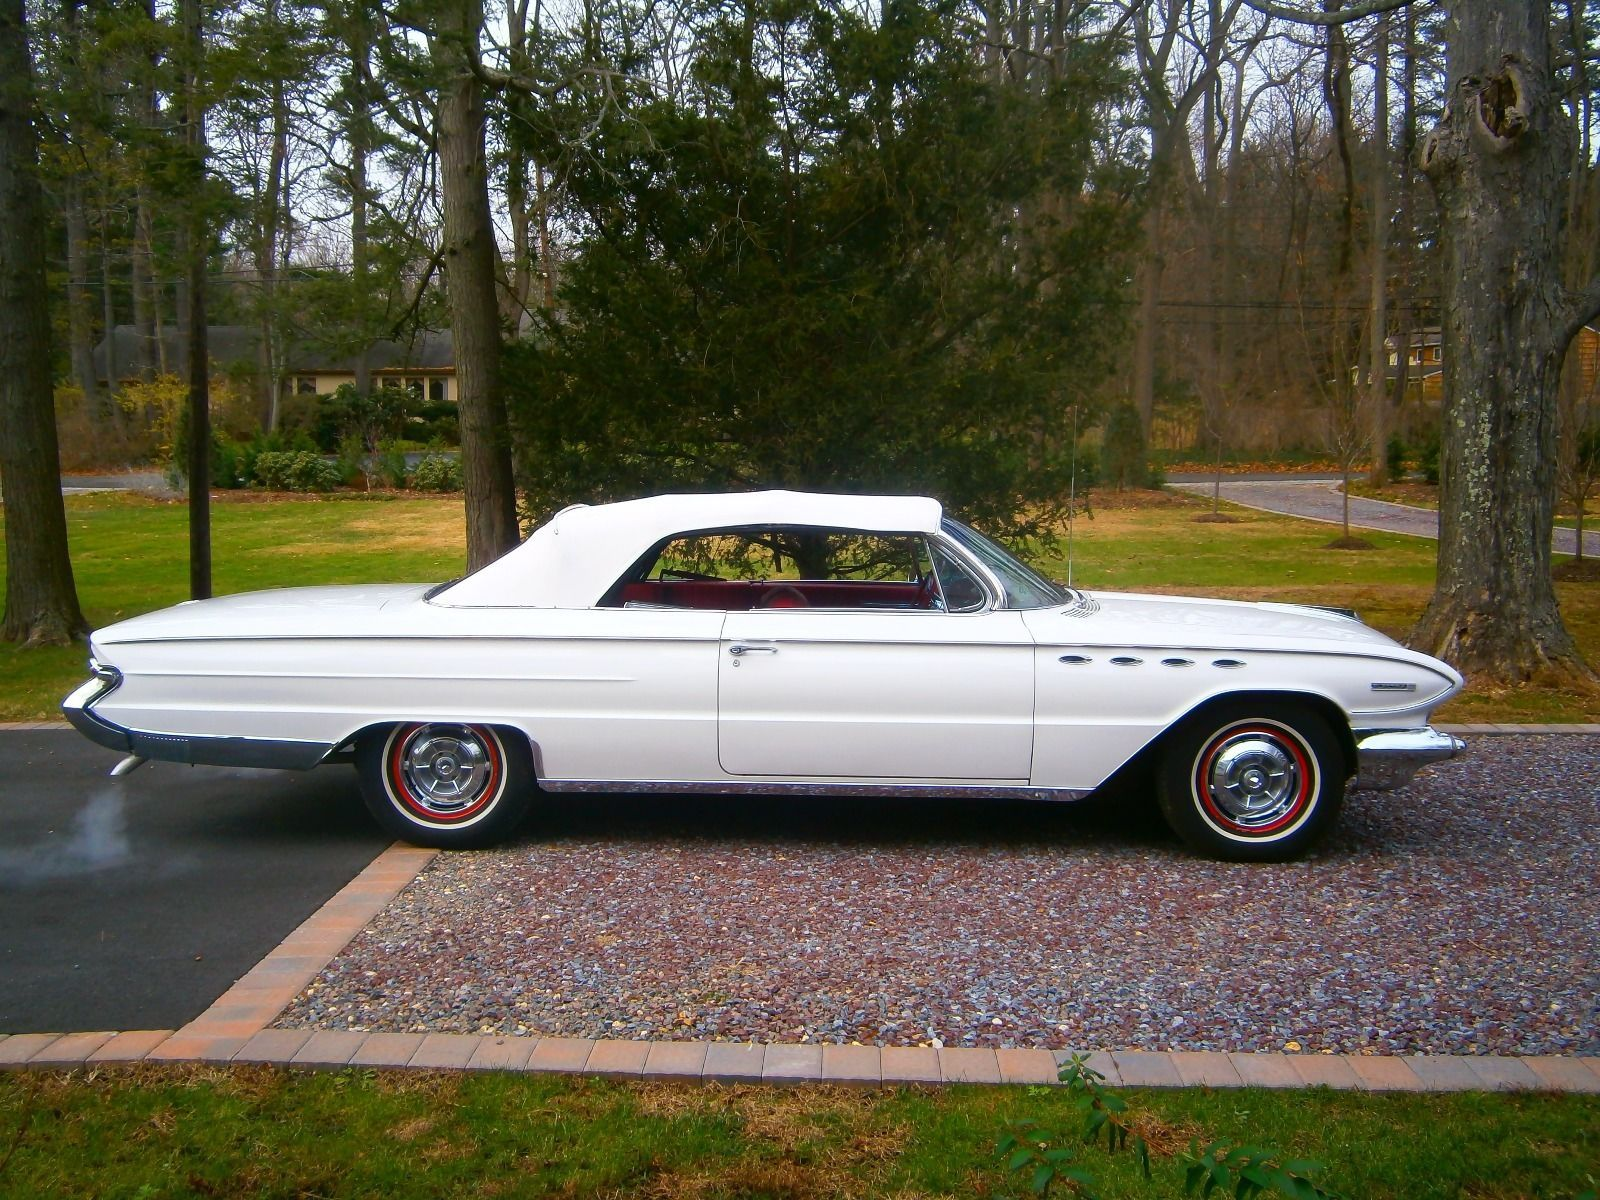 1962 buick electra 225 convert ad american car auto ads 1920 1960 s pinterest electra 225 buick electra and buick